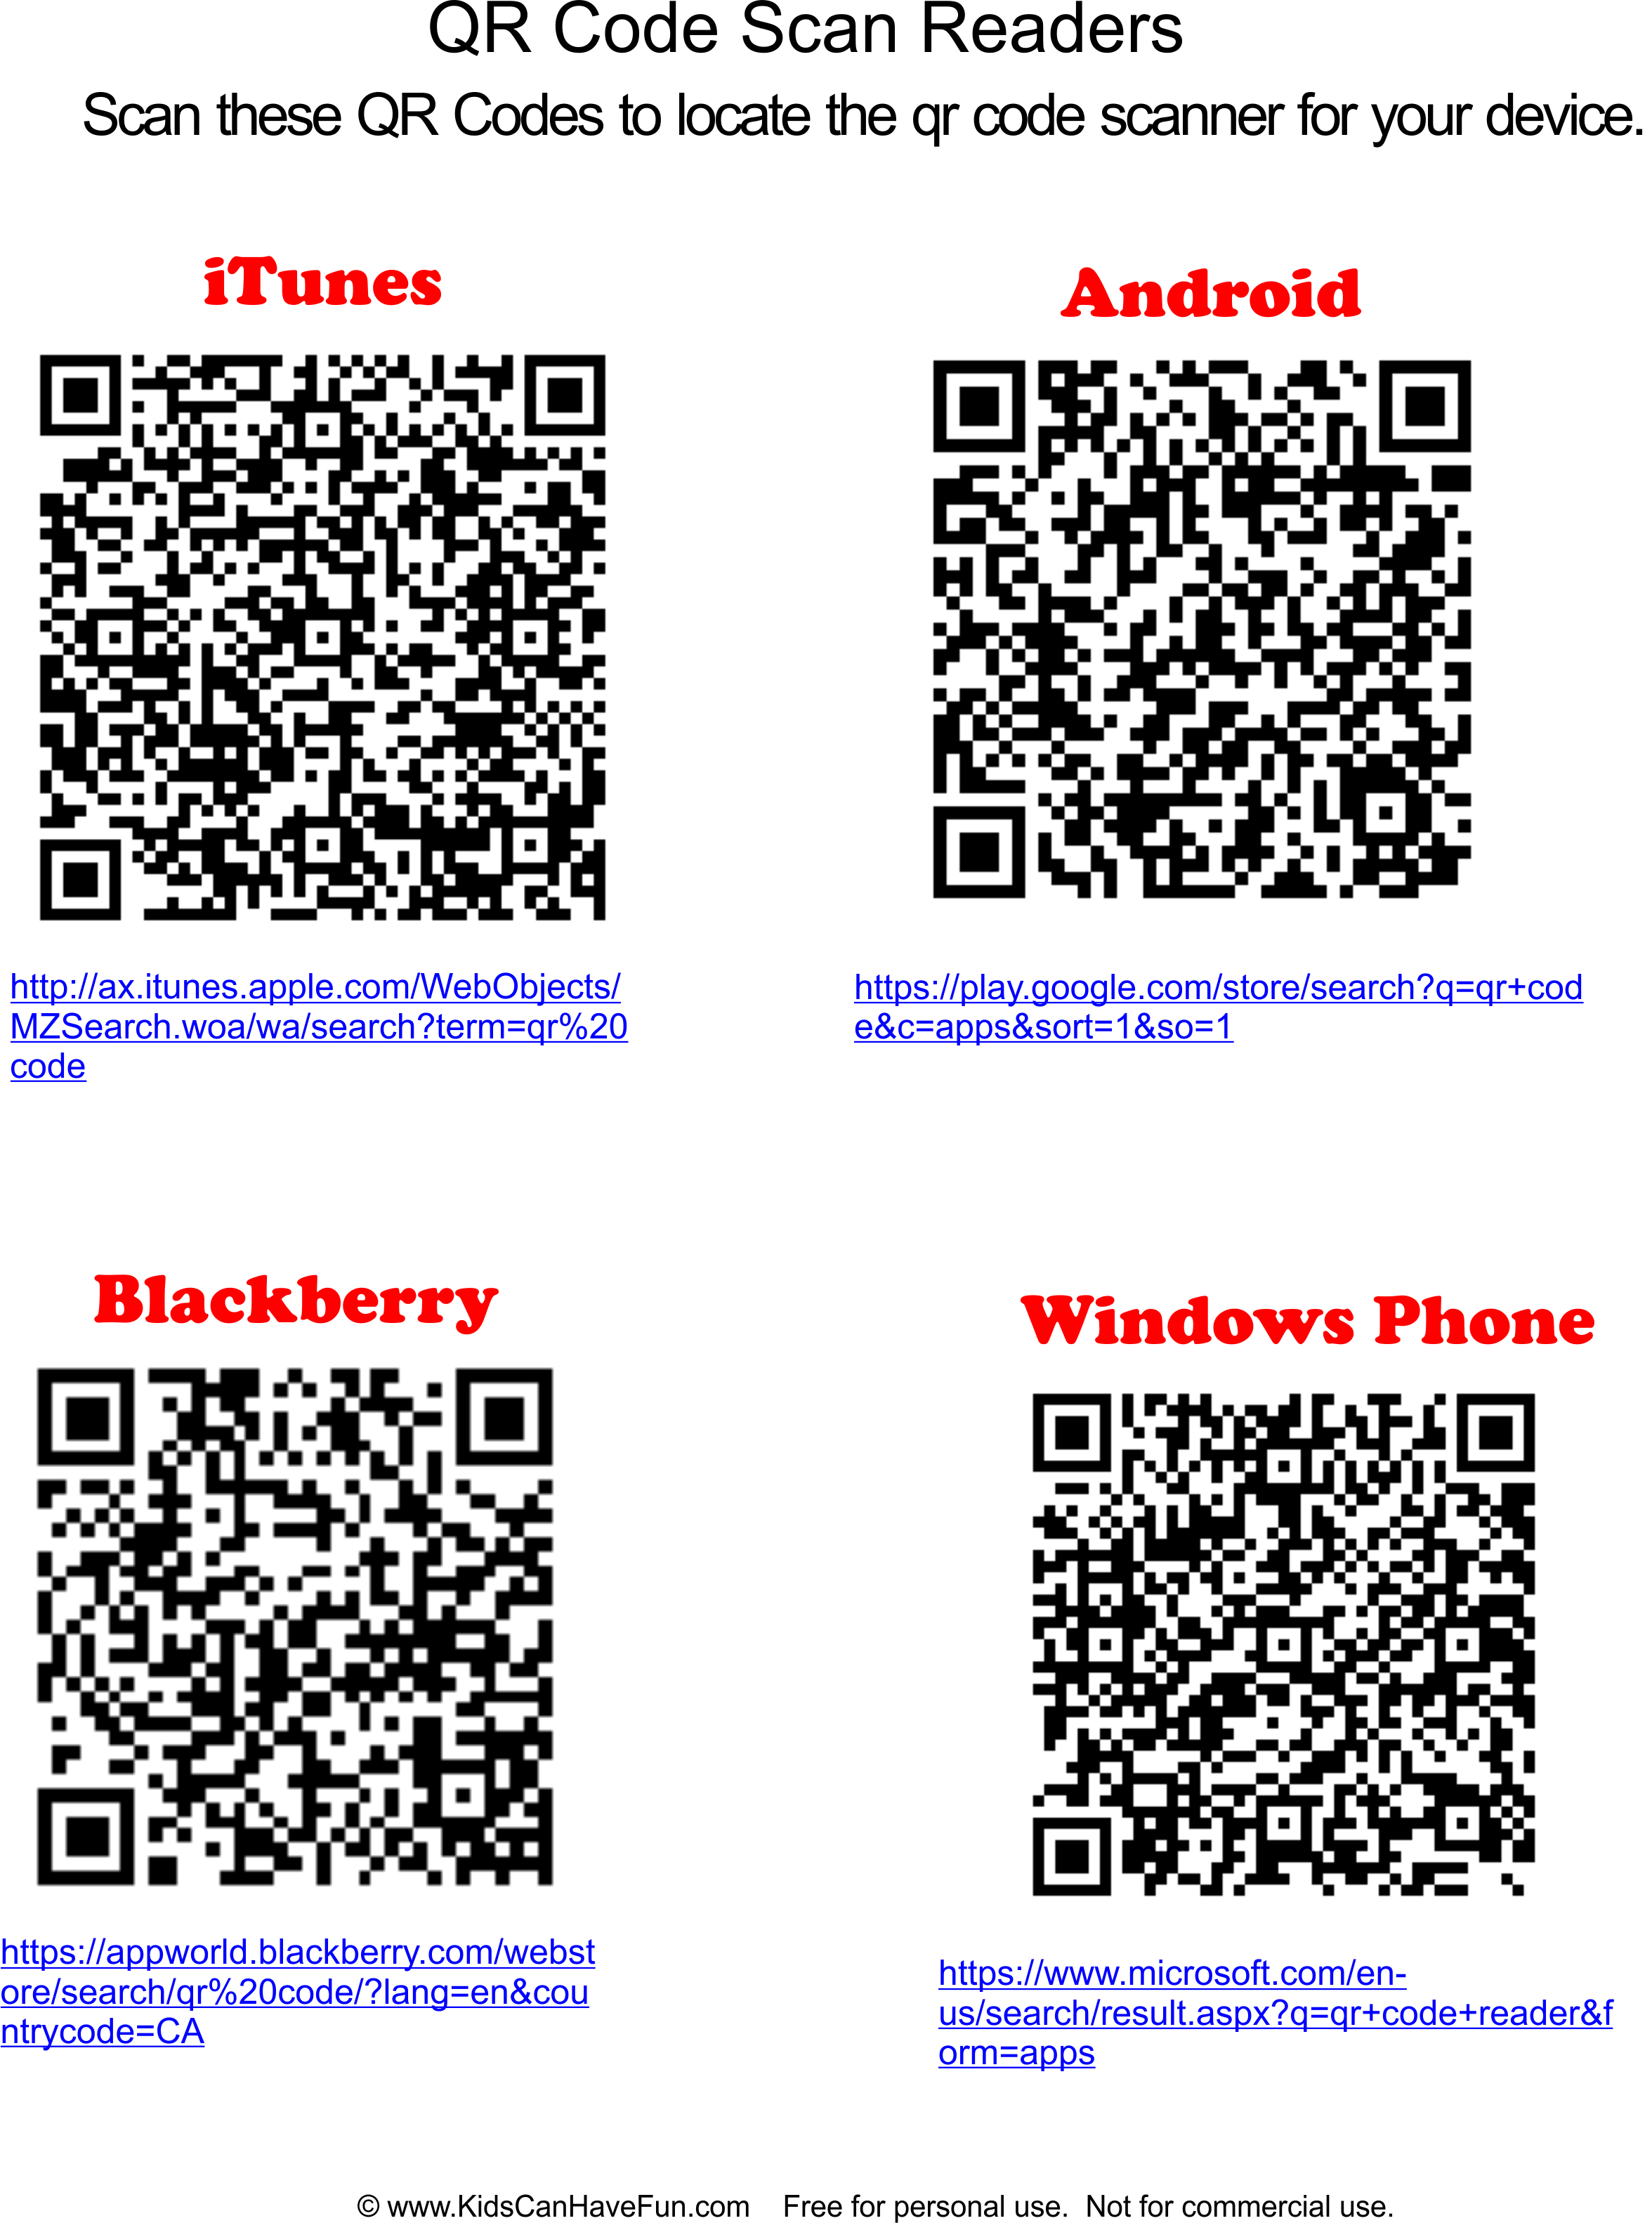 Qr Code Links To Qr Code Scanner Downloads For Smartphones And Tablets Http Www Kidscanhavefun Com Qr Codes For Kids Htm Qrco Coding For Kids Coding Qr Code